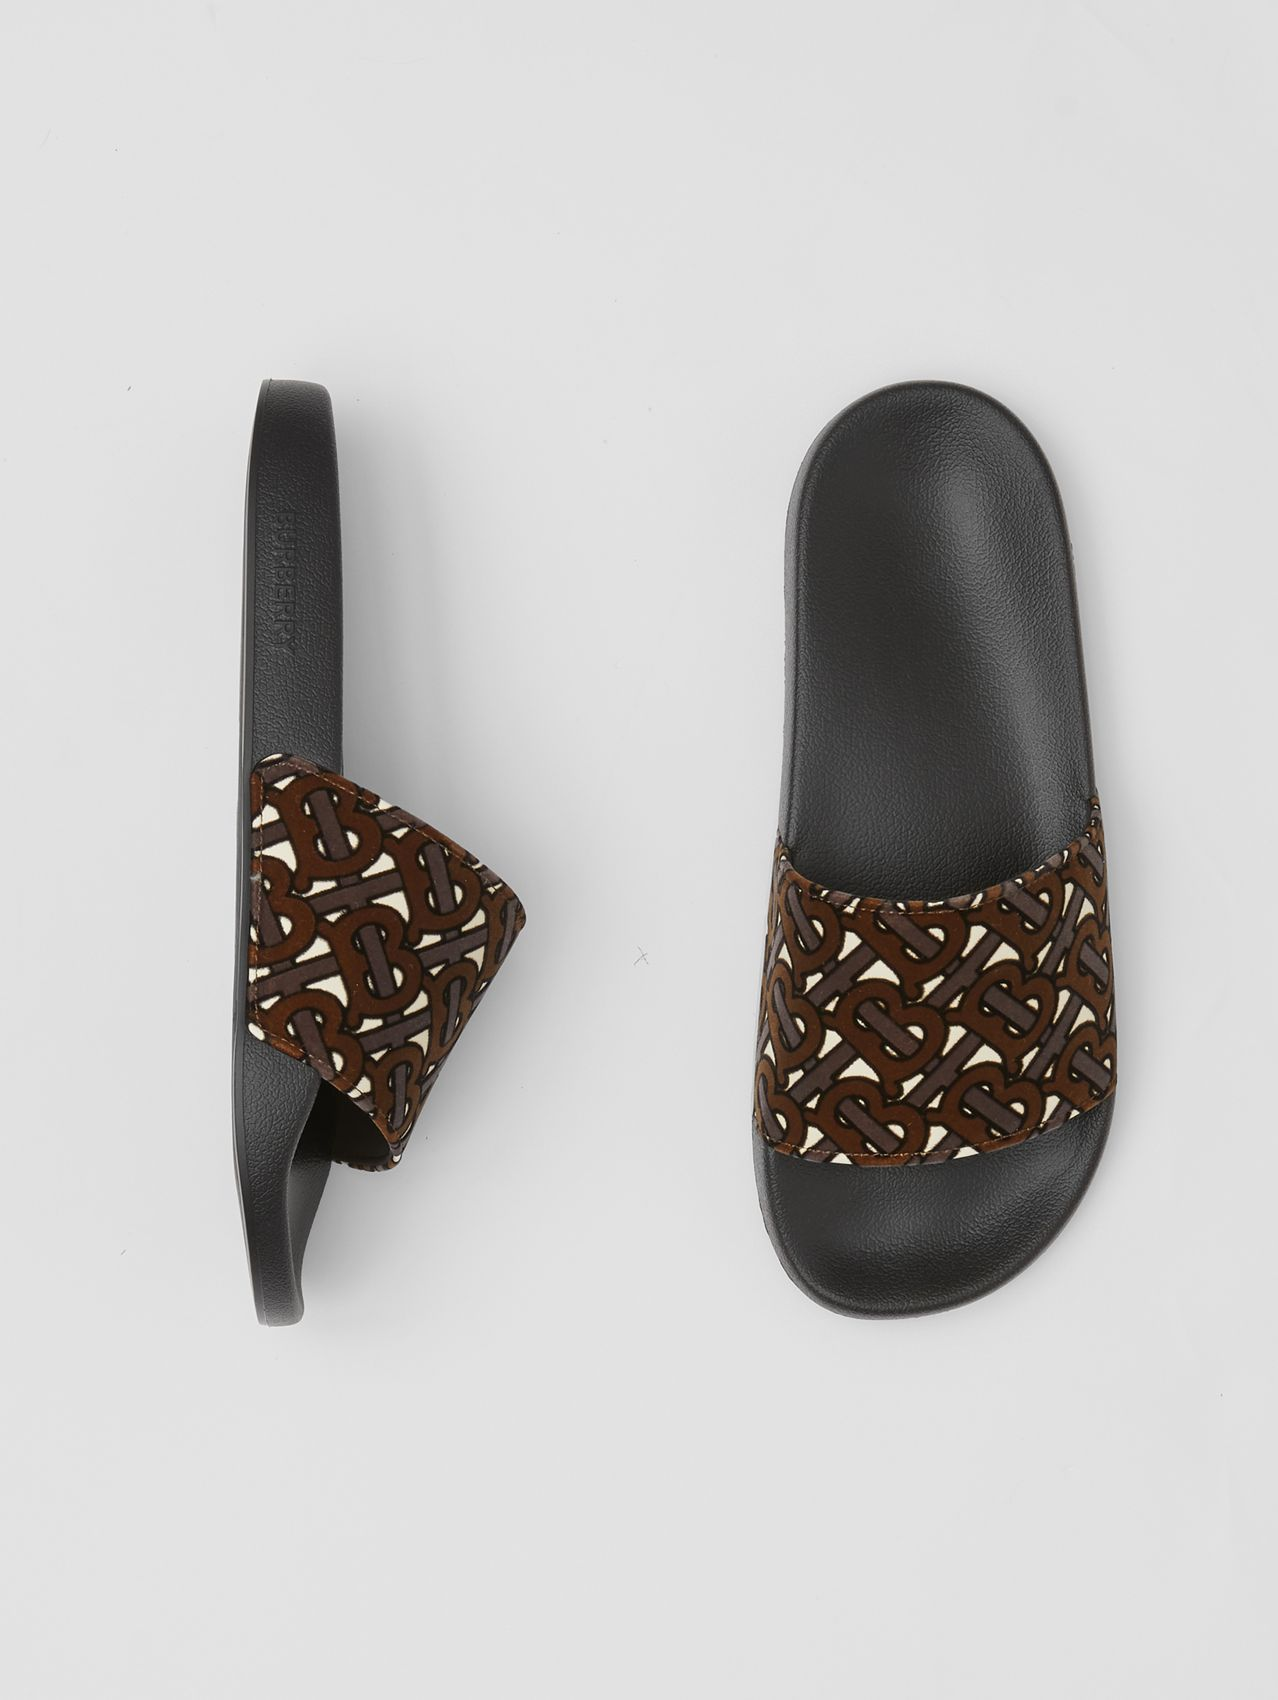 Monogram Flocked Leather Slides in Bridle Brown